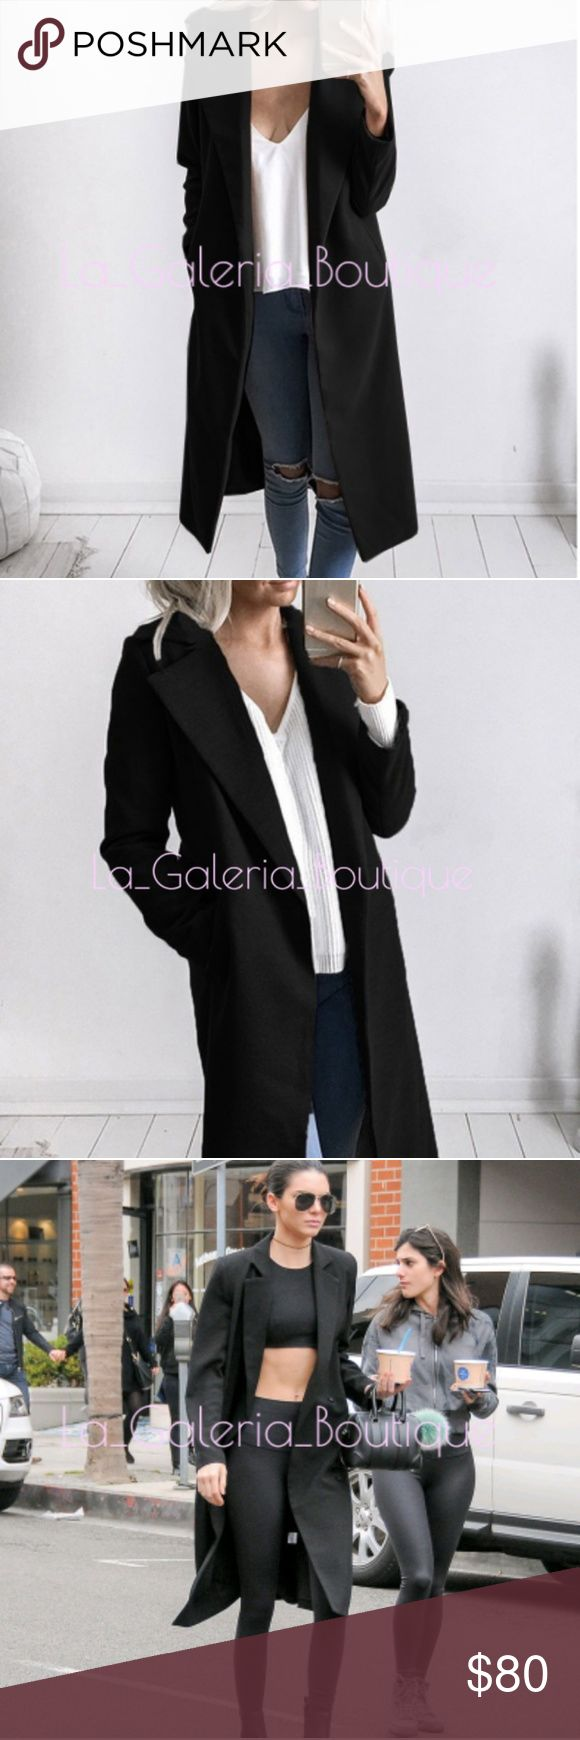 🆕️ LONG BLACK TRENCH COAT DUSTER JACKET 🆕️LONG BLACK TRENCH COAT DUSTER JACKET Perfect for the oversized look!💕 COLOR: BLACK 100% BRAND NEW MATERIAL: POLYESTER  High quality, very soft and comfortable. It is very popular and sexy design, we believe you will love it!. Manual measurement, There is 2-3% difference according to manual measurement. please check the measurement chart carefully before you buy the item.  Thank you,  for your support!.💕 boutique Jackets & Coats Trench Coats